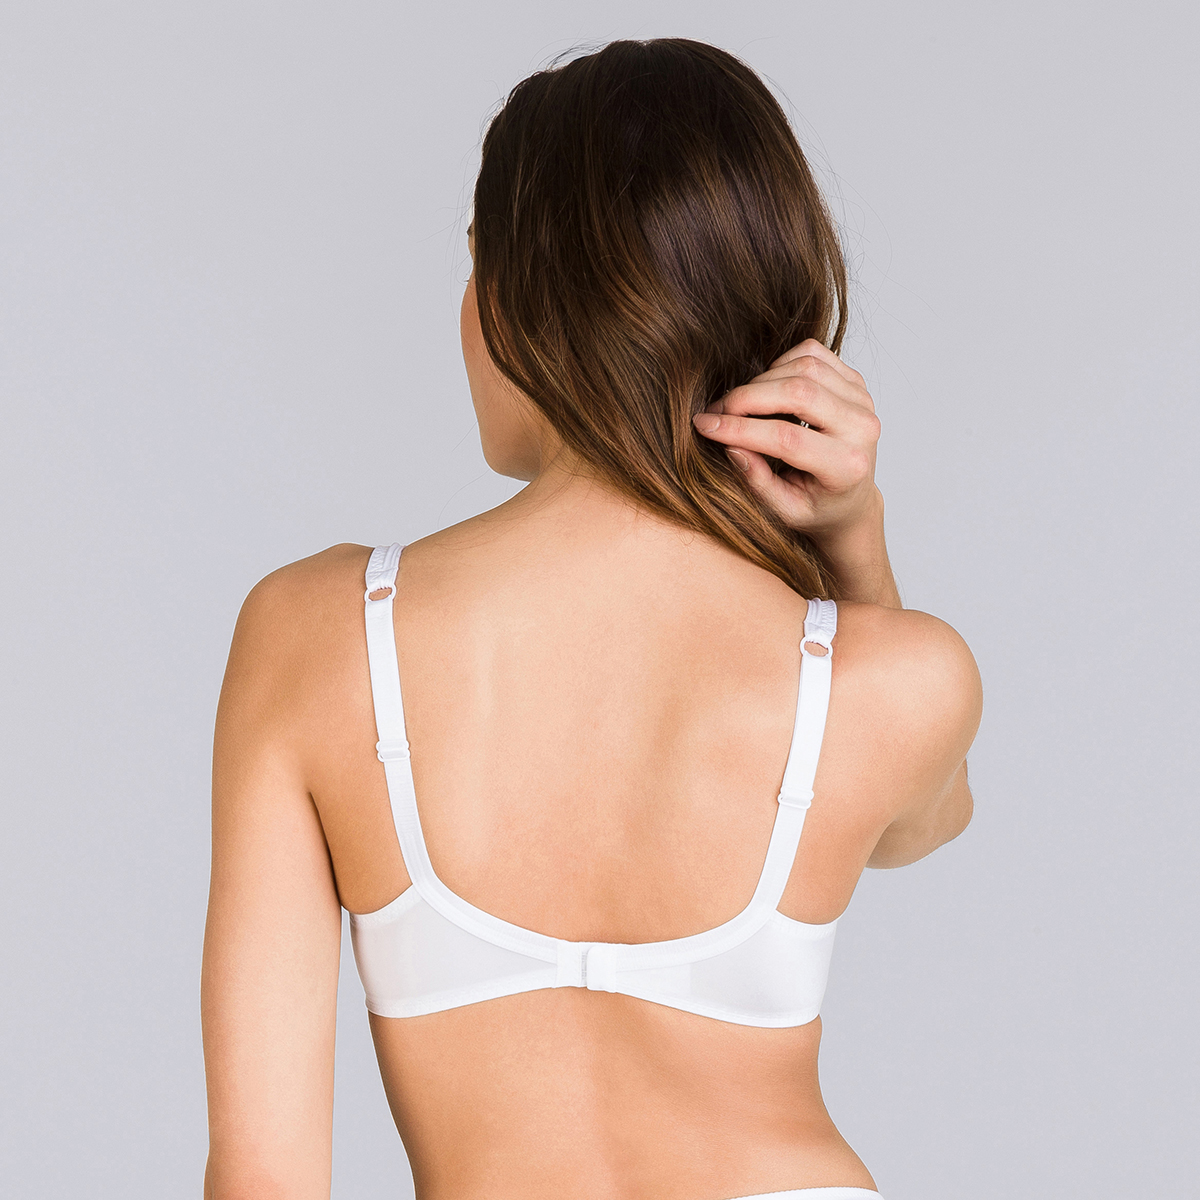 Soutien-gorge emboîtant blanc - Perfect Silhouette, , PLAYTEX